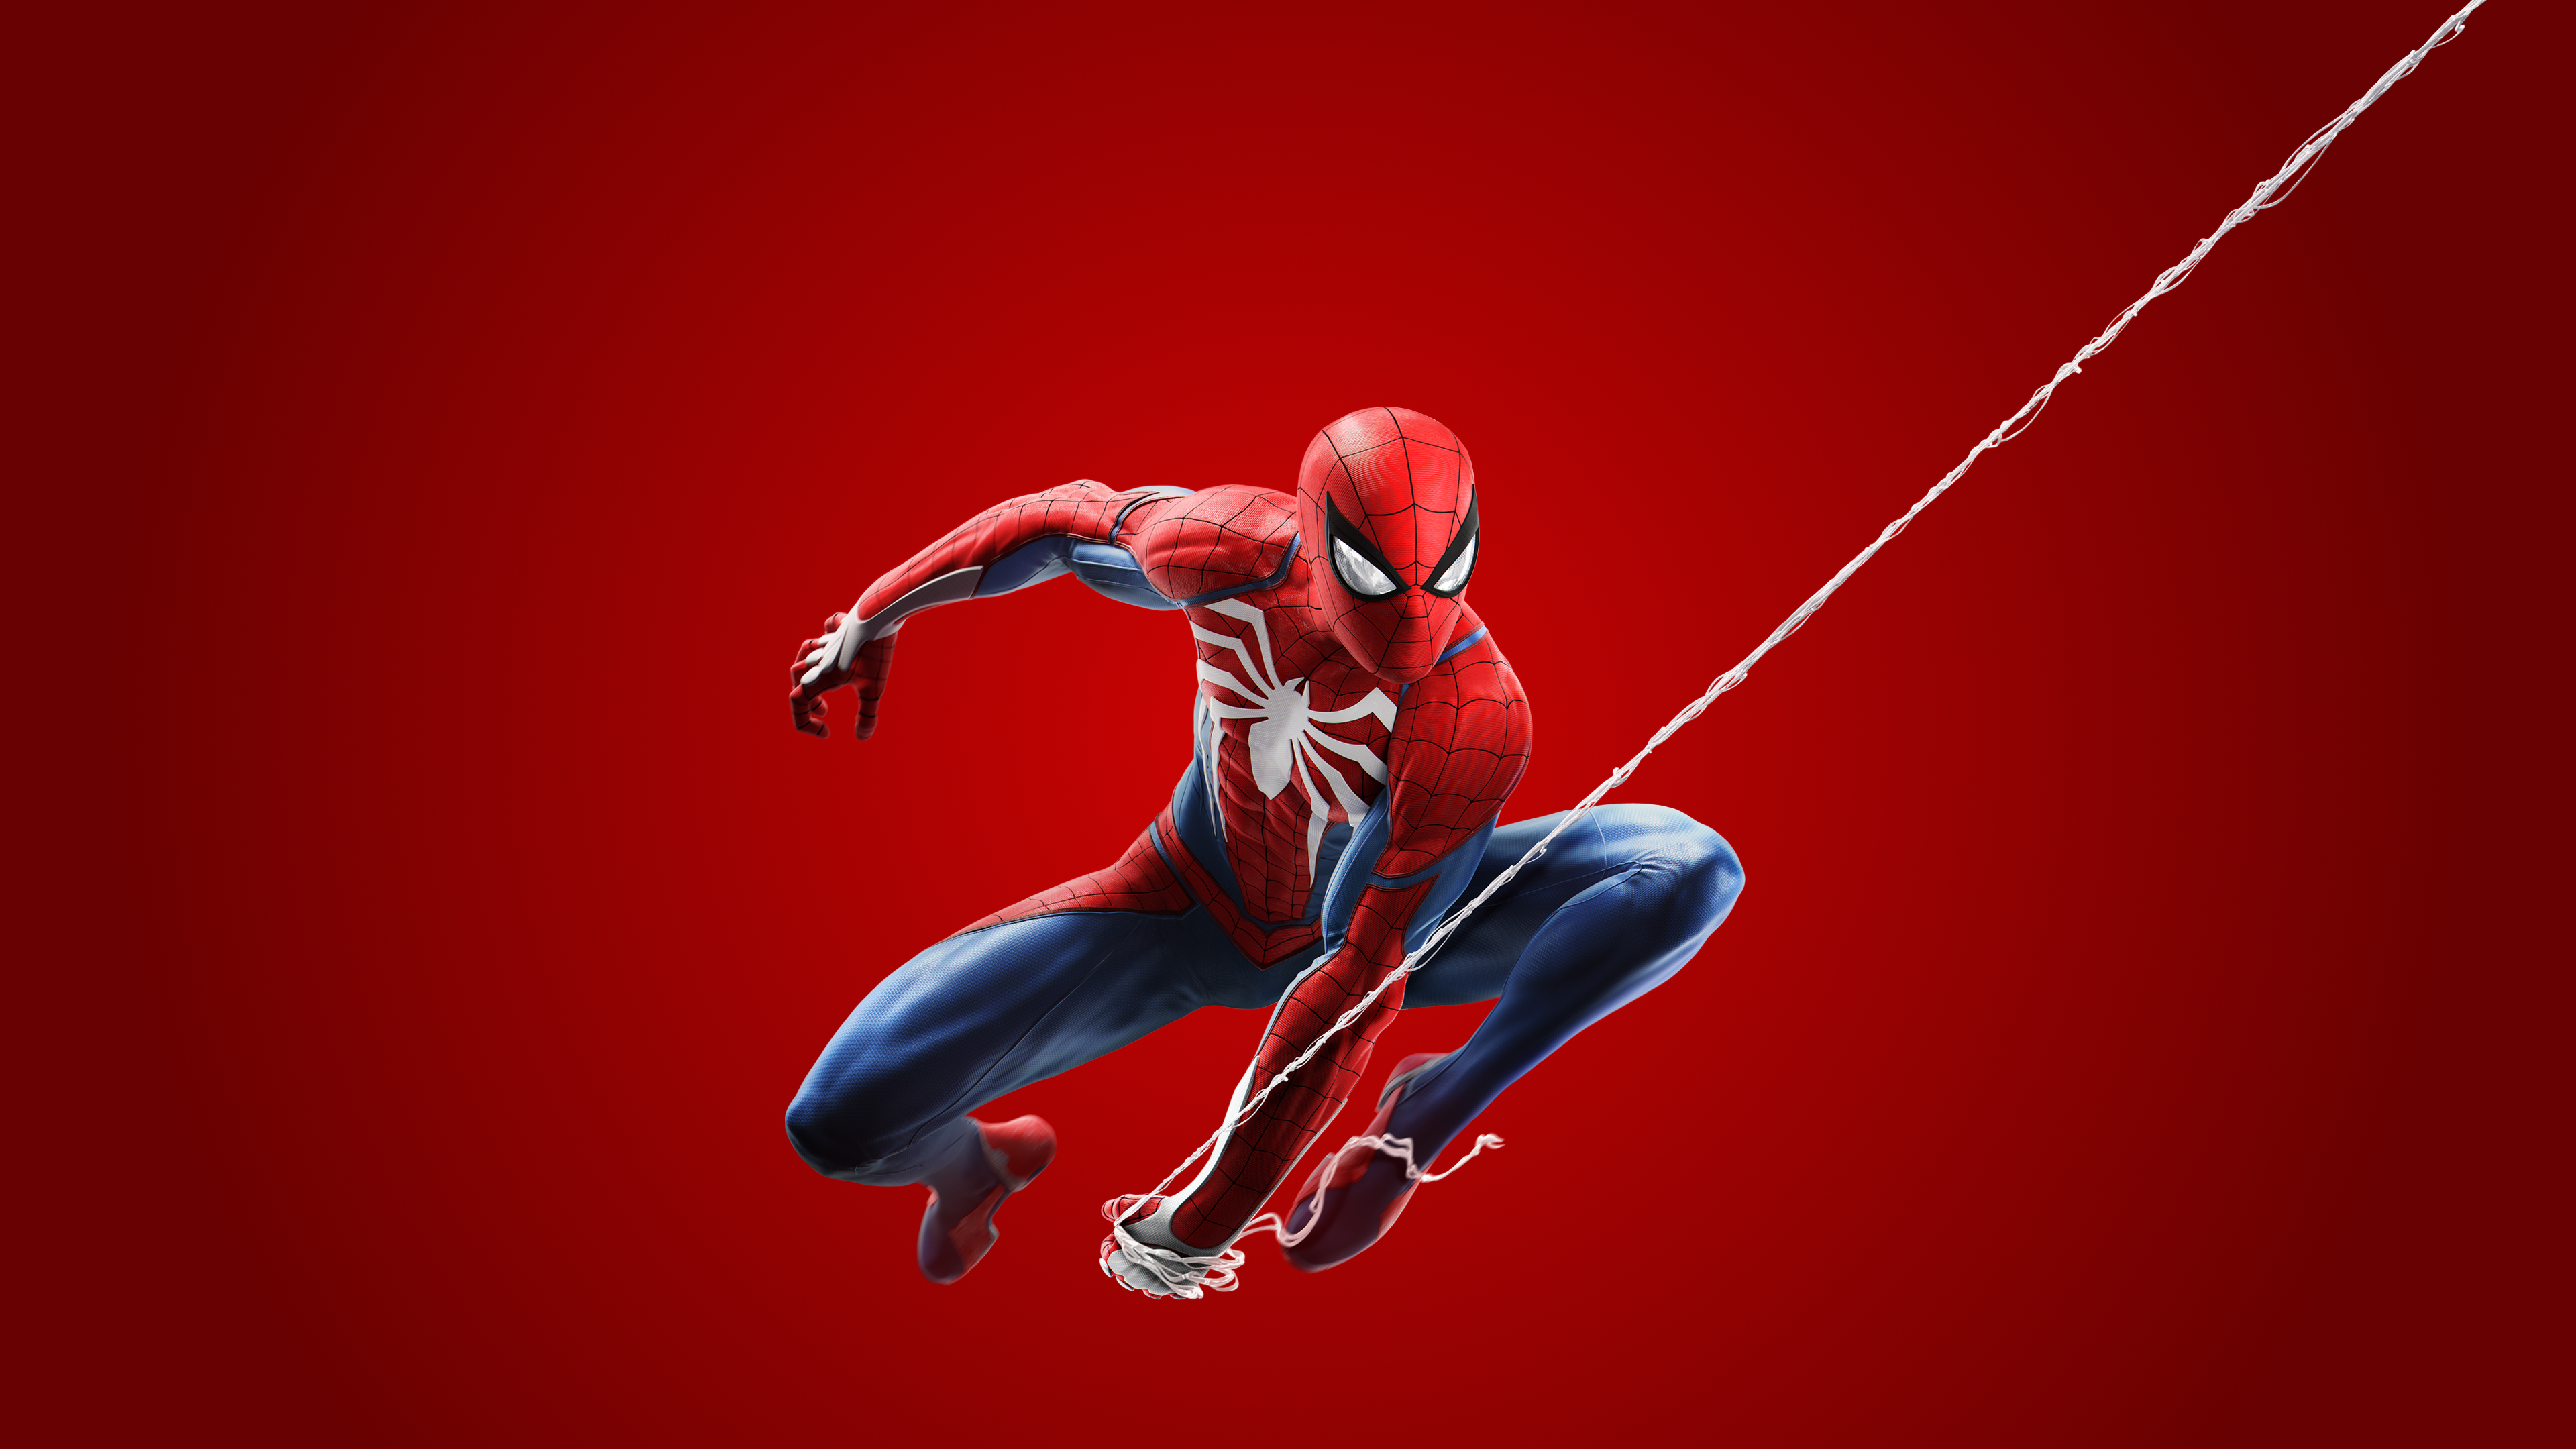 Spider-man 4K | PS4Wallpapers.com